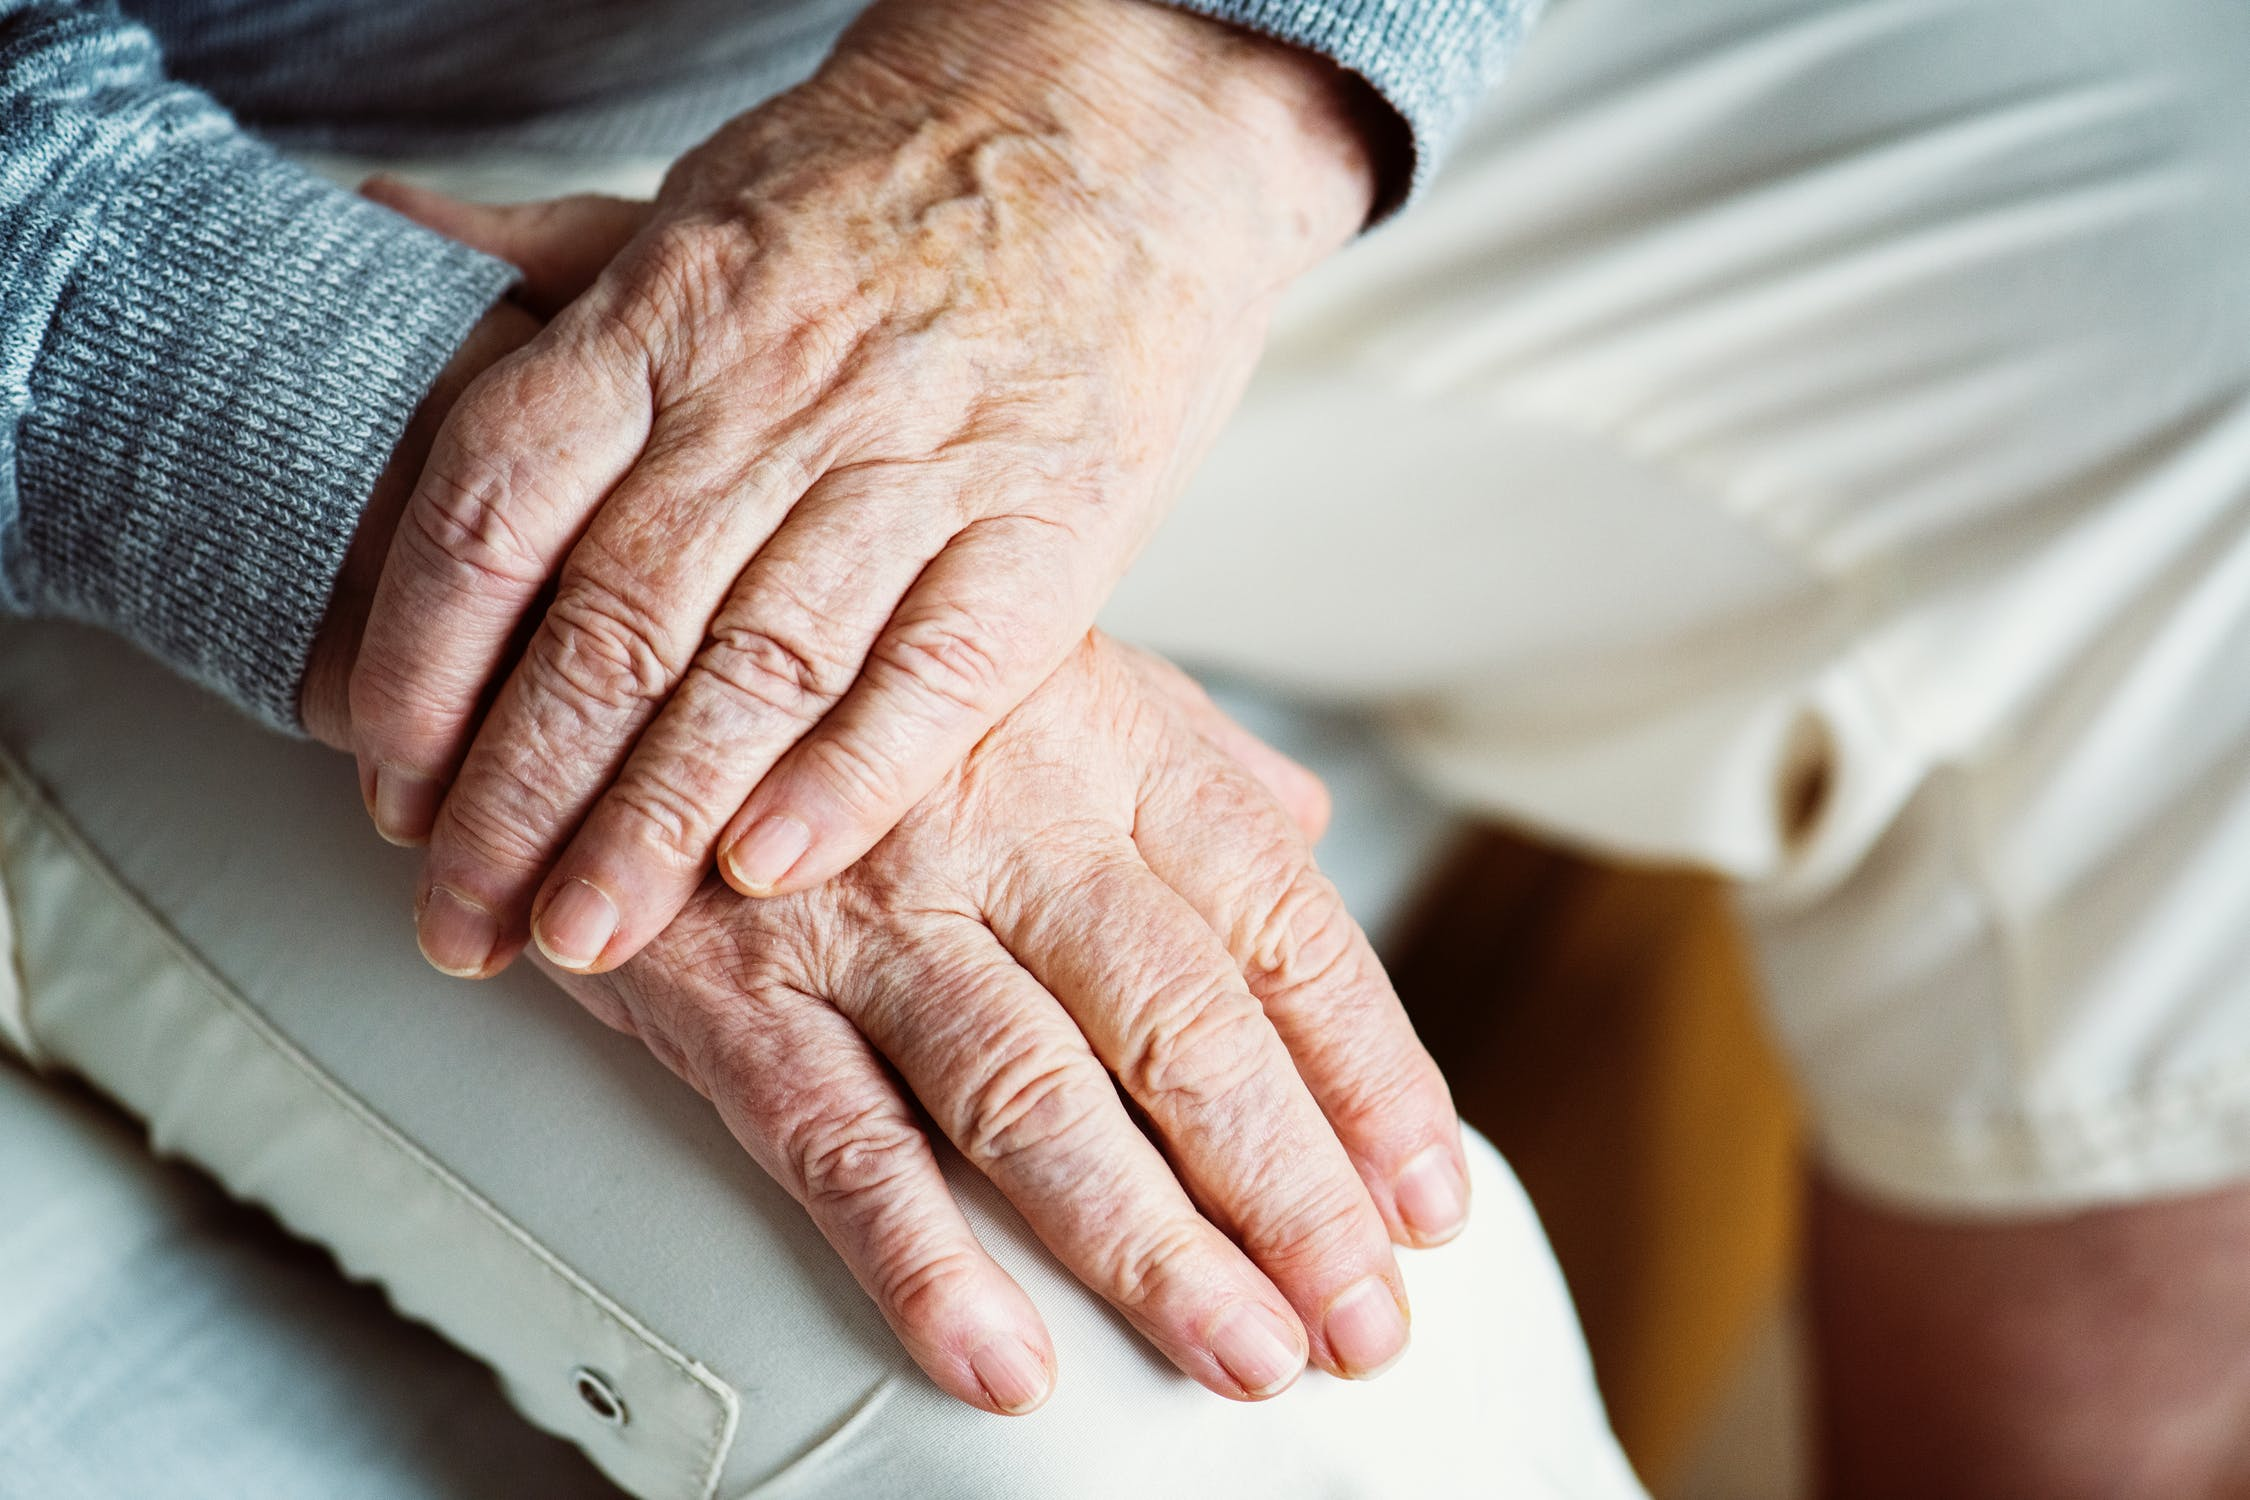 New Study Suggests Treatment >> New Study Suggests Effective Rehabilitation Possible For Chronic